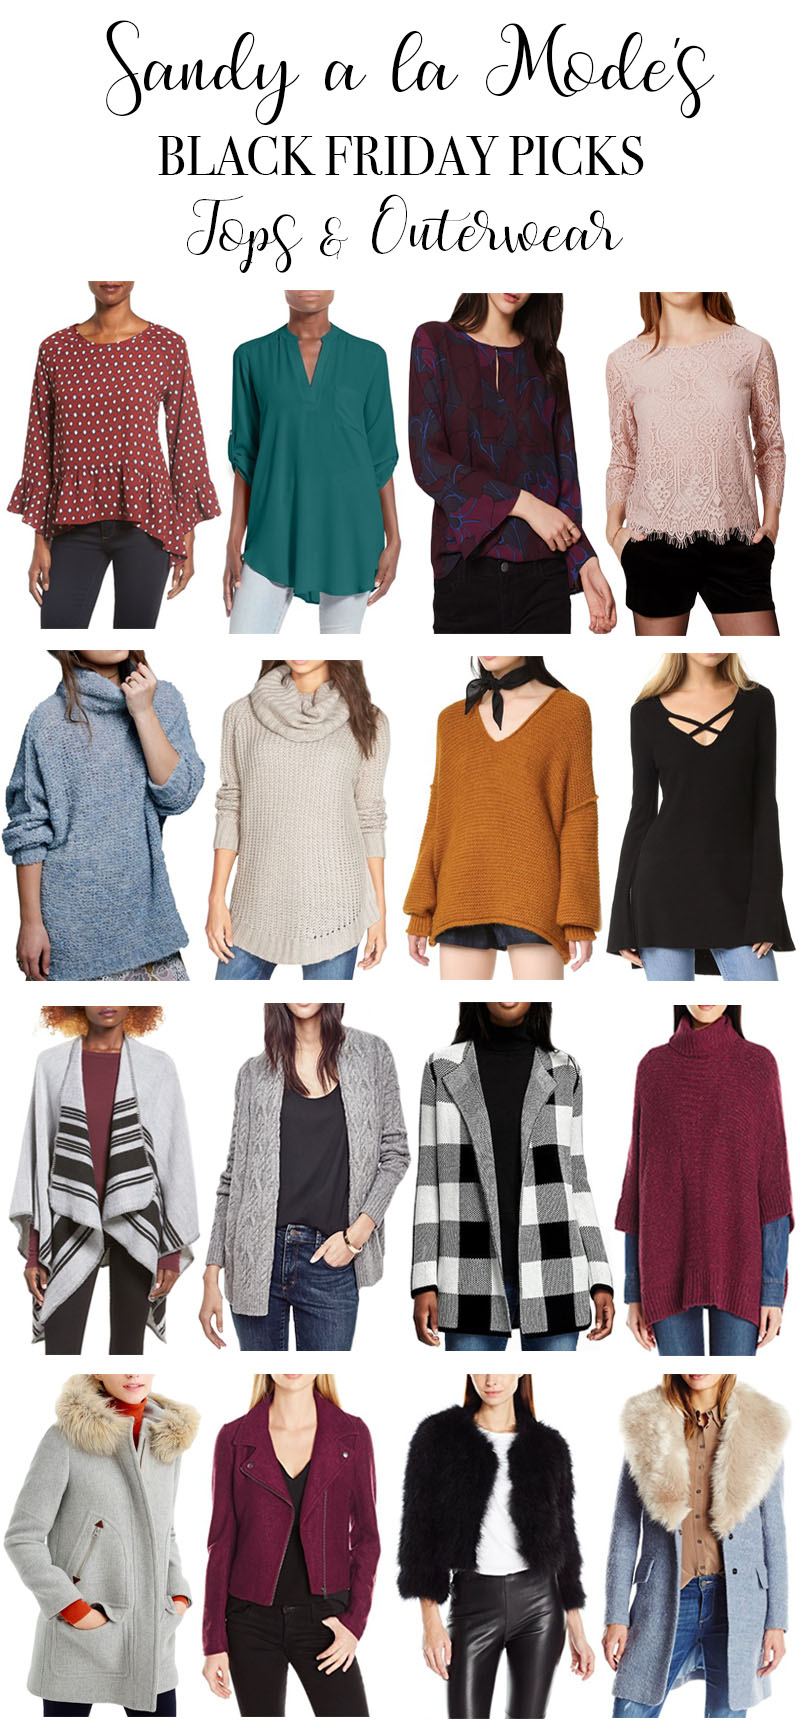 Black Friday Picks Tops and Outerwear